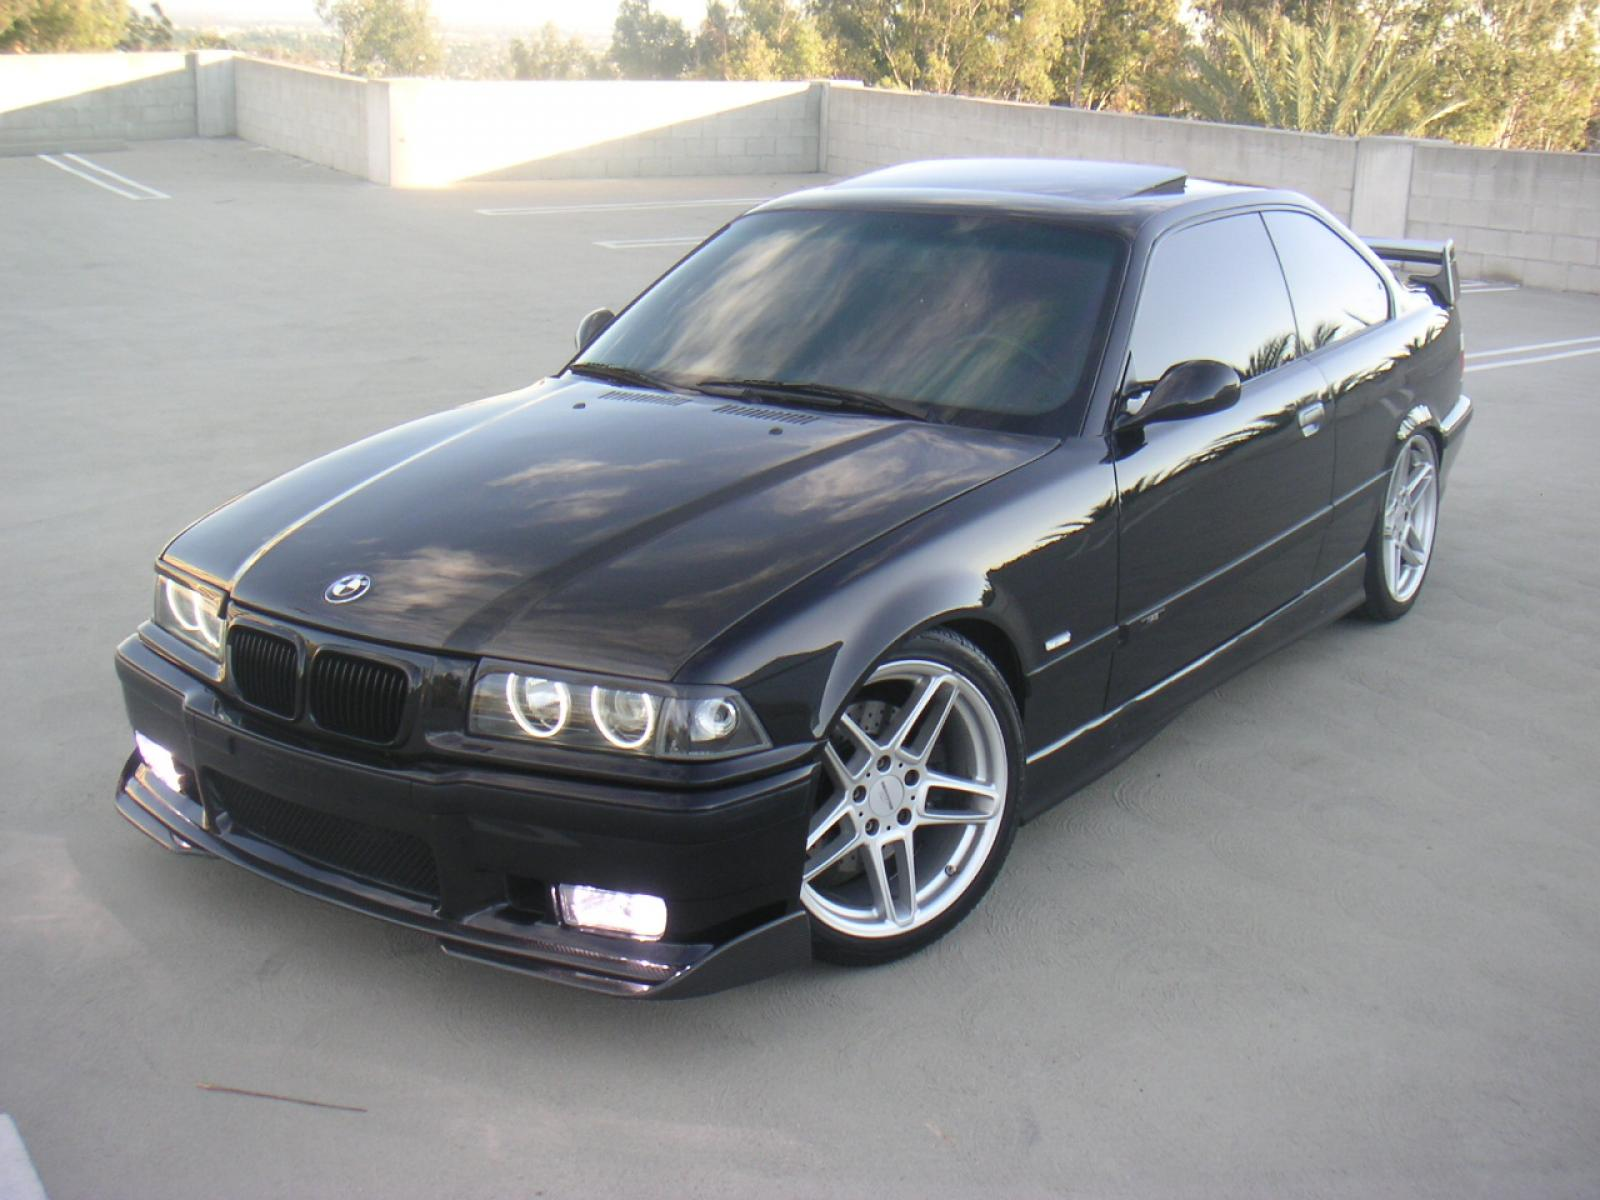 hight resolution of 800 1024 1280 1600 origin 1997 bmw